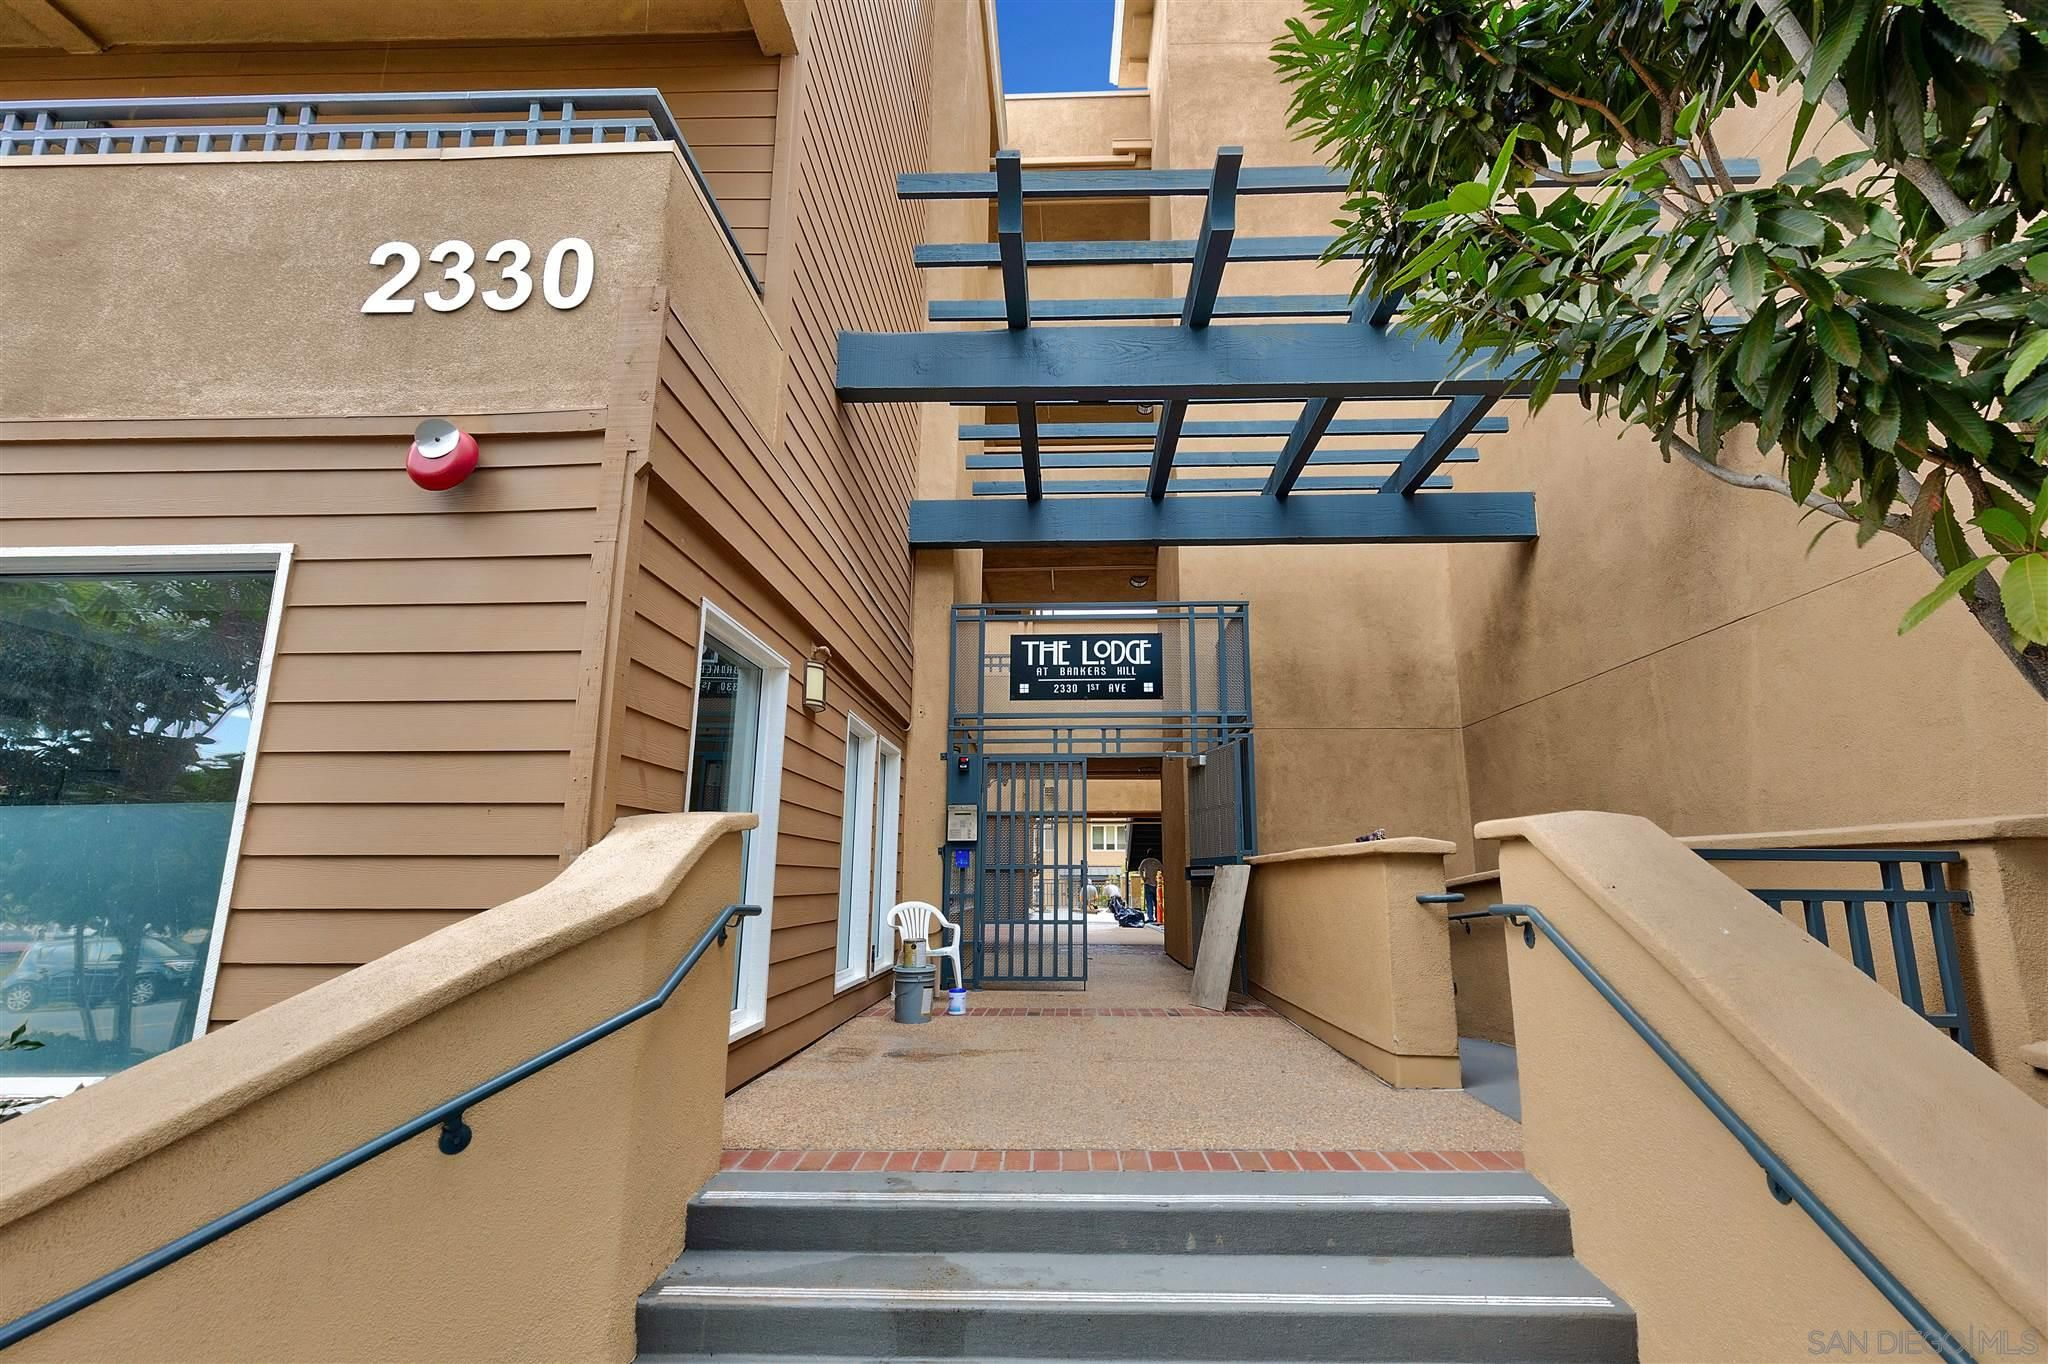 Main Photo: Condo for sale : 2 bedrooms : 2330 1st Ave #314 in San Diego